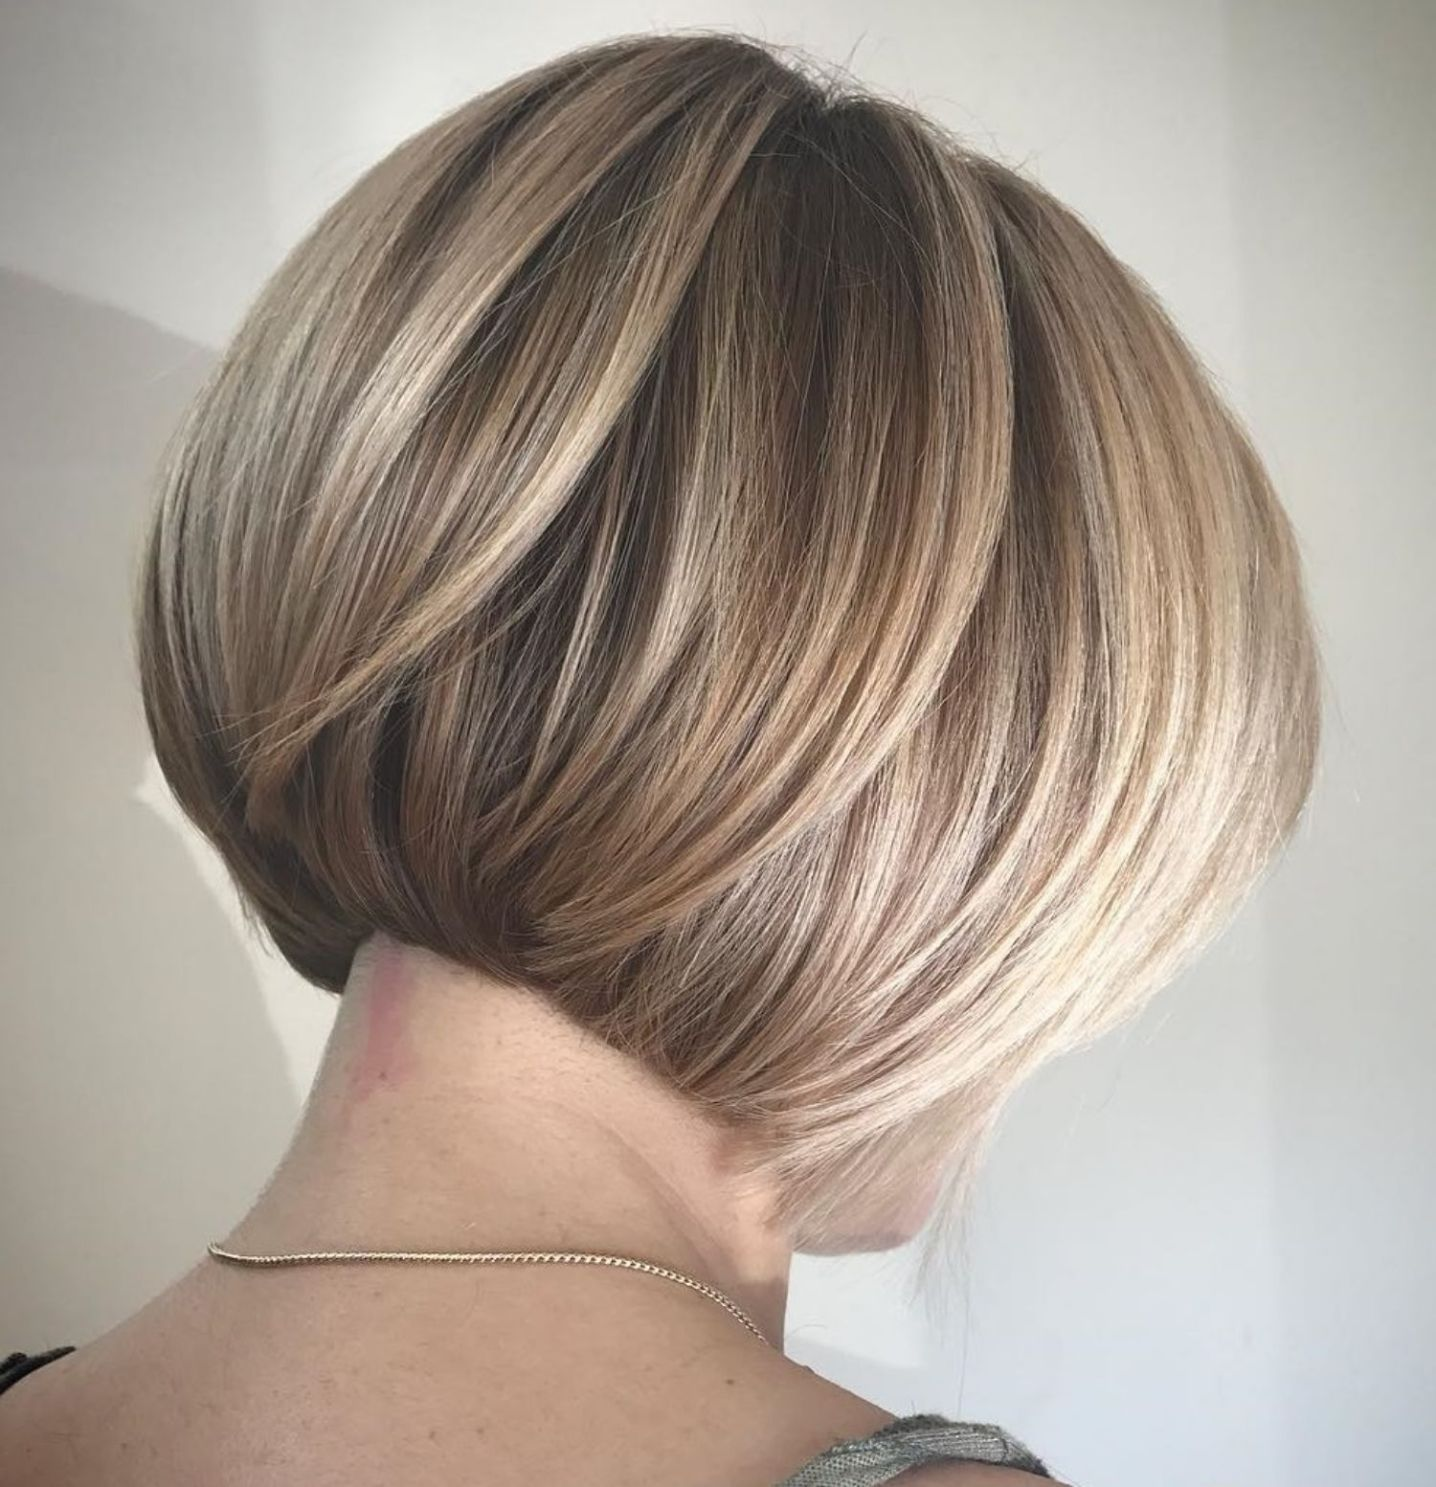 60 Best Short Bob Haircuts and Hairstyles for Women in 2020 | Short hair  with layers, Concave bob hairstyles, Short bob haircuts